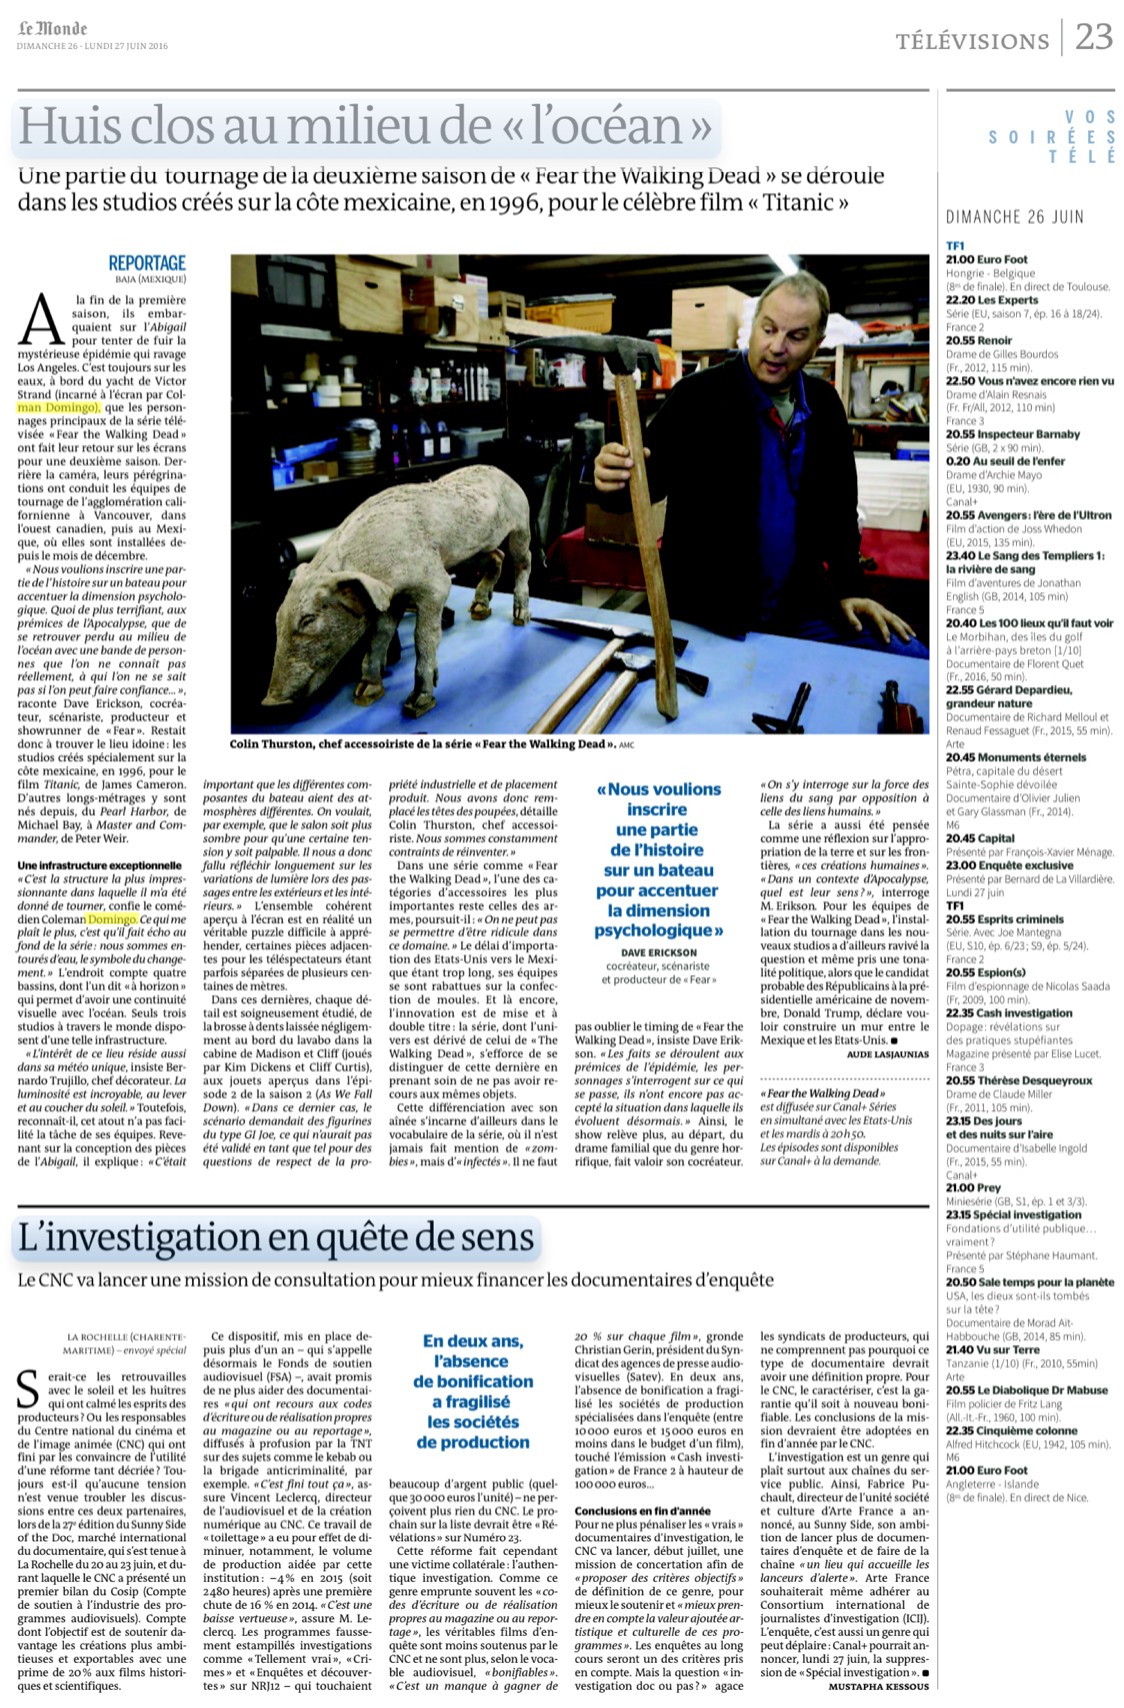 Le Monde Feature Page | Fear The Walking Dead- Camera In The Middle Of The Ocean